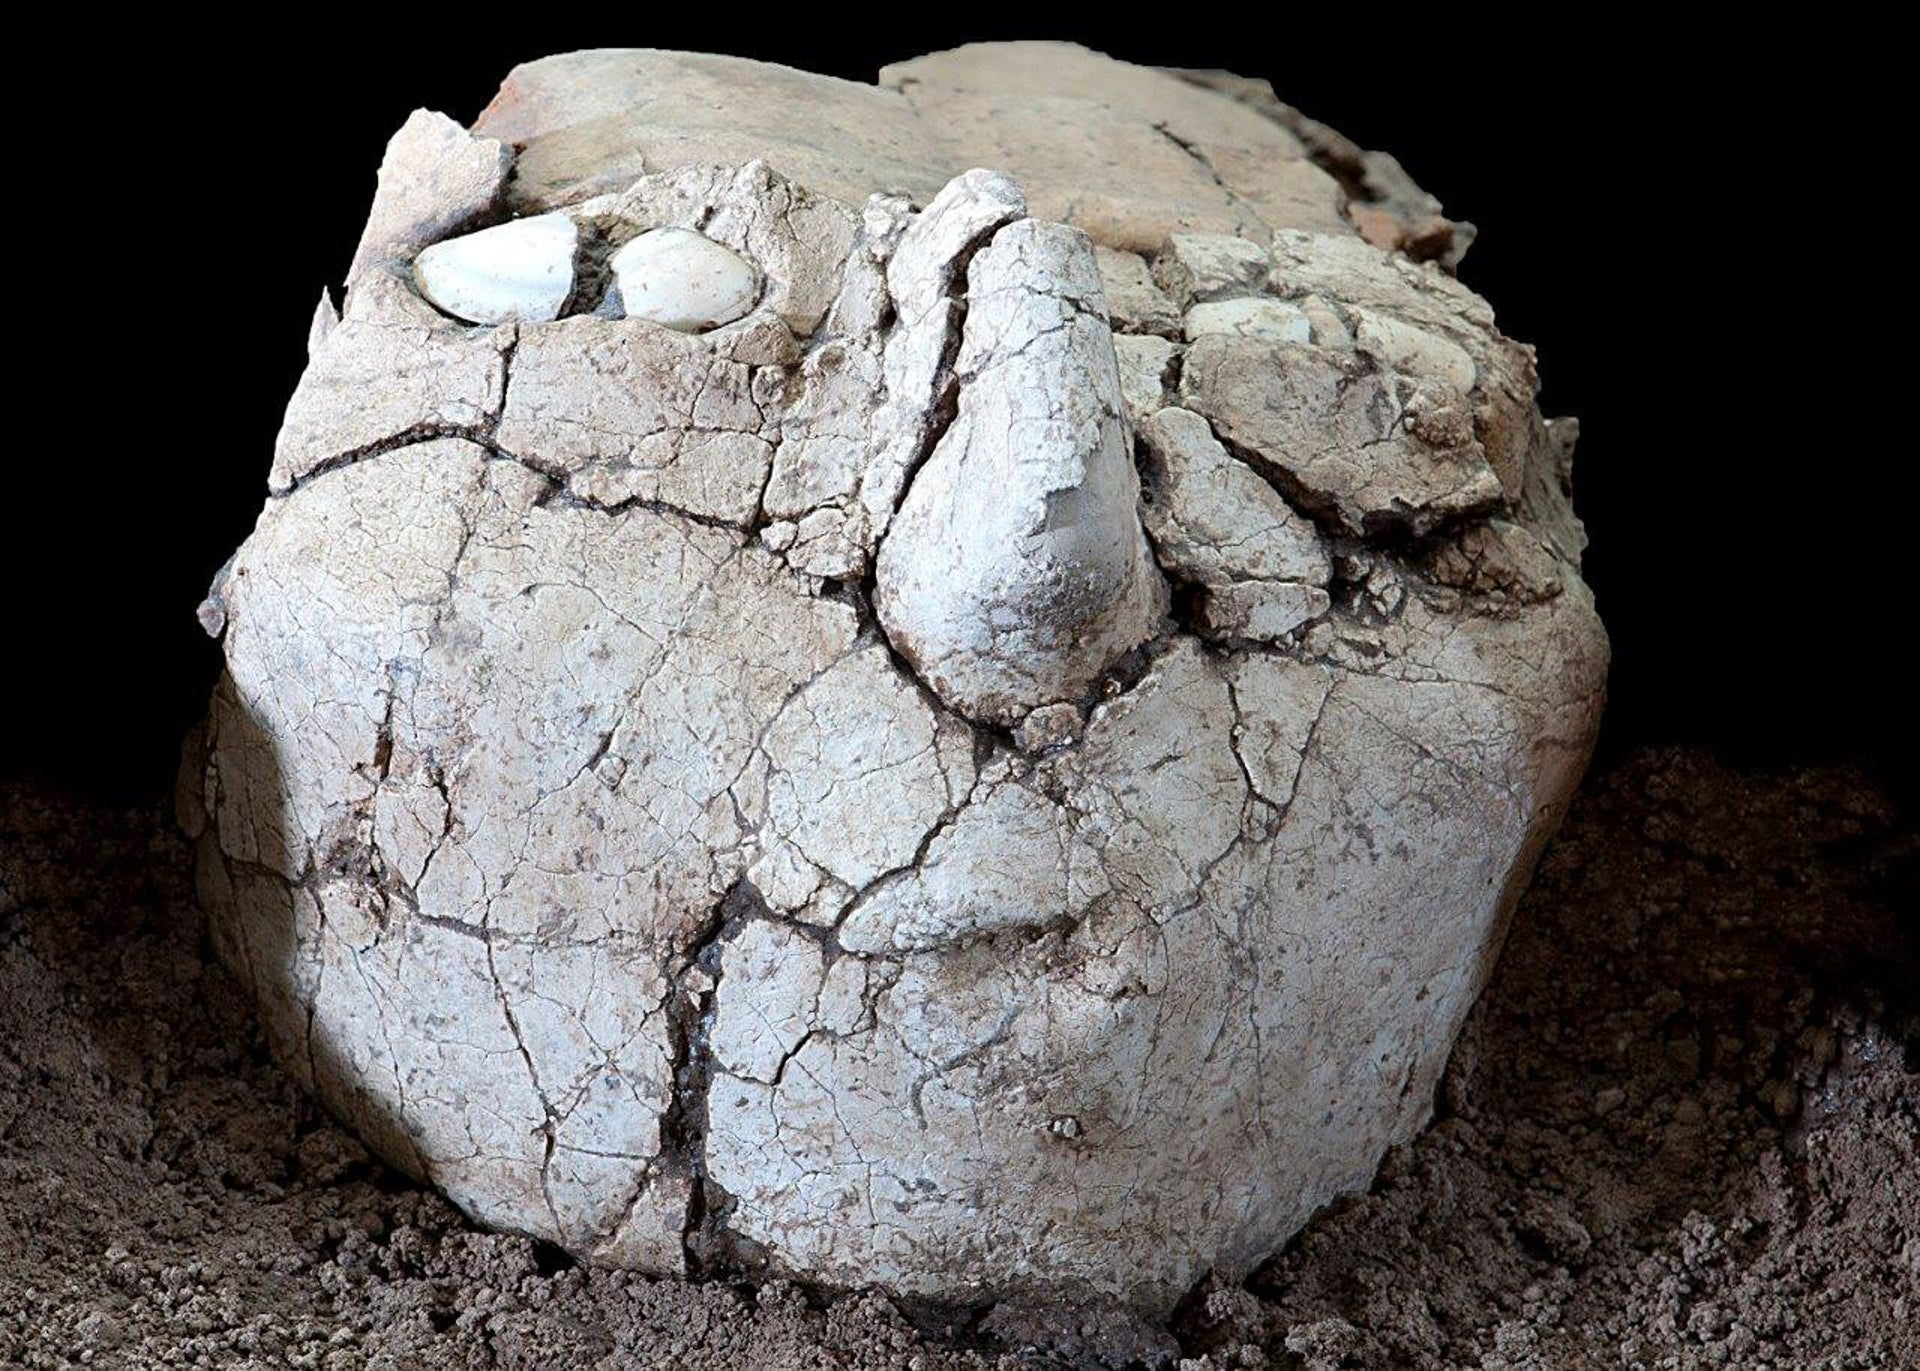 One of the plastered skulls found in the Neolithic site of Yiftahel in the Galilee and dating to 9,000-8,500 years ago. Making the skulls, with seashells for eyes, would have involved enormous effort: Archaeologists now think they were connected to ancestor worship in the transition from hunting-gathering to settlement, that would support the rise of civilization as we know it.